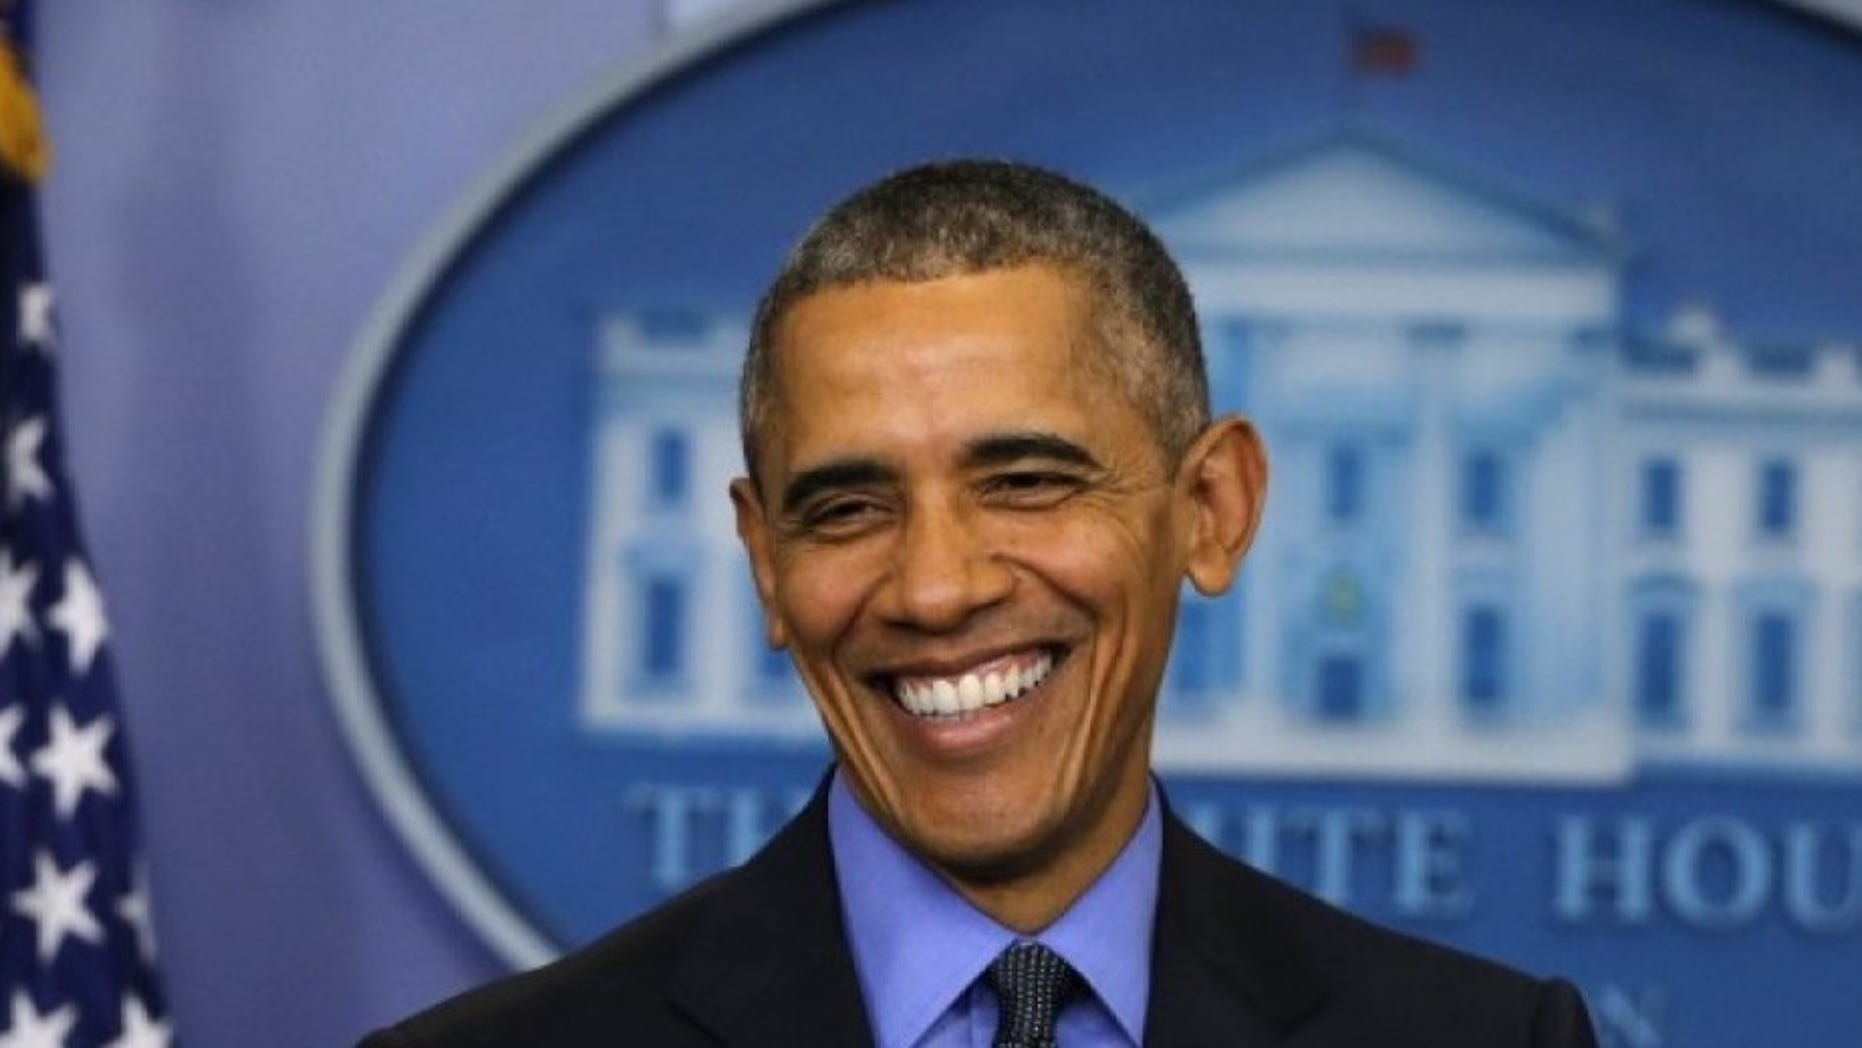 U.S. President Barack Obama smiles as he holds his end of the year news conference at the White House in Washington December 18, 2015. REUTERS/Carlos Barria